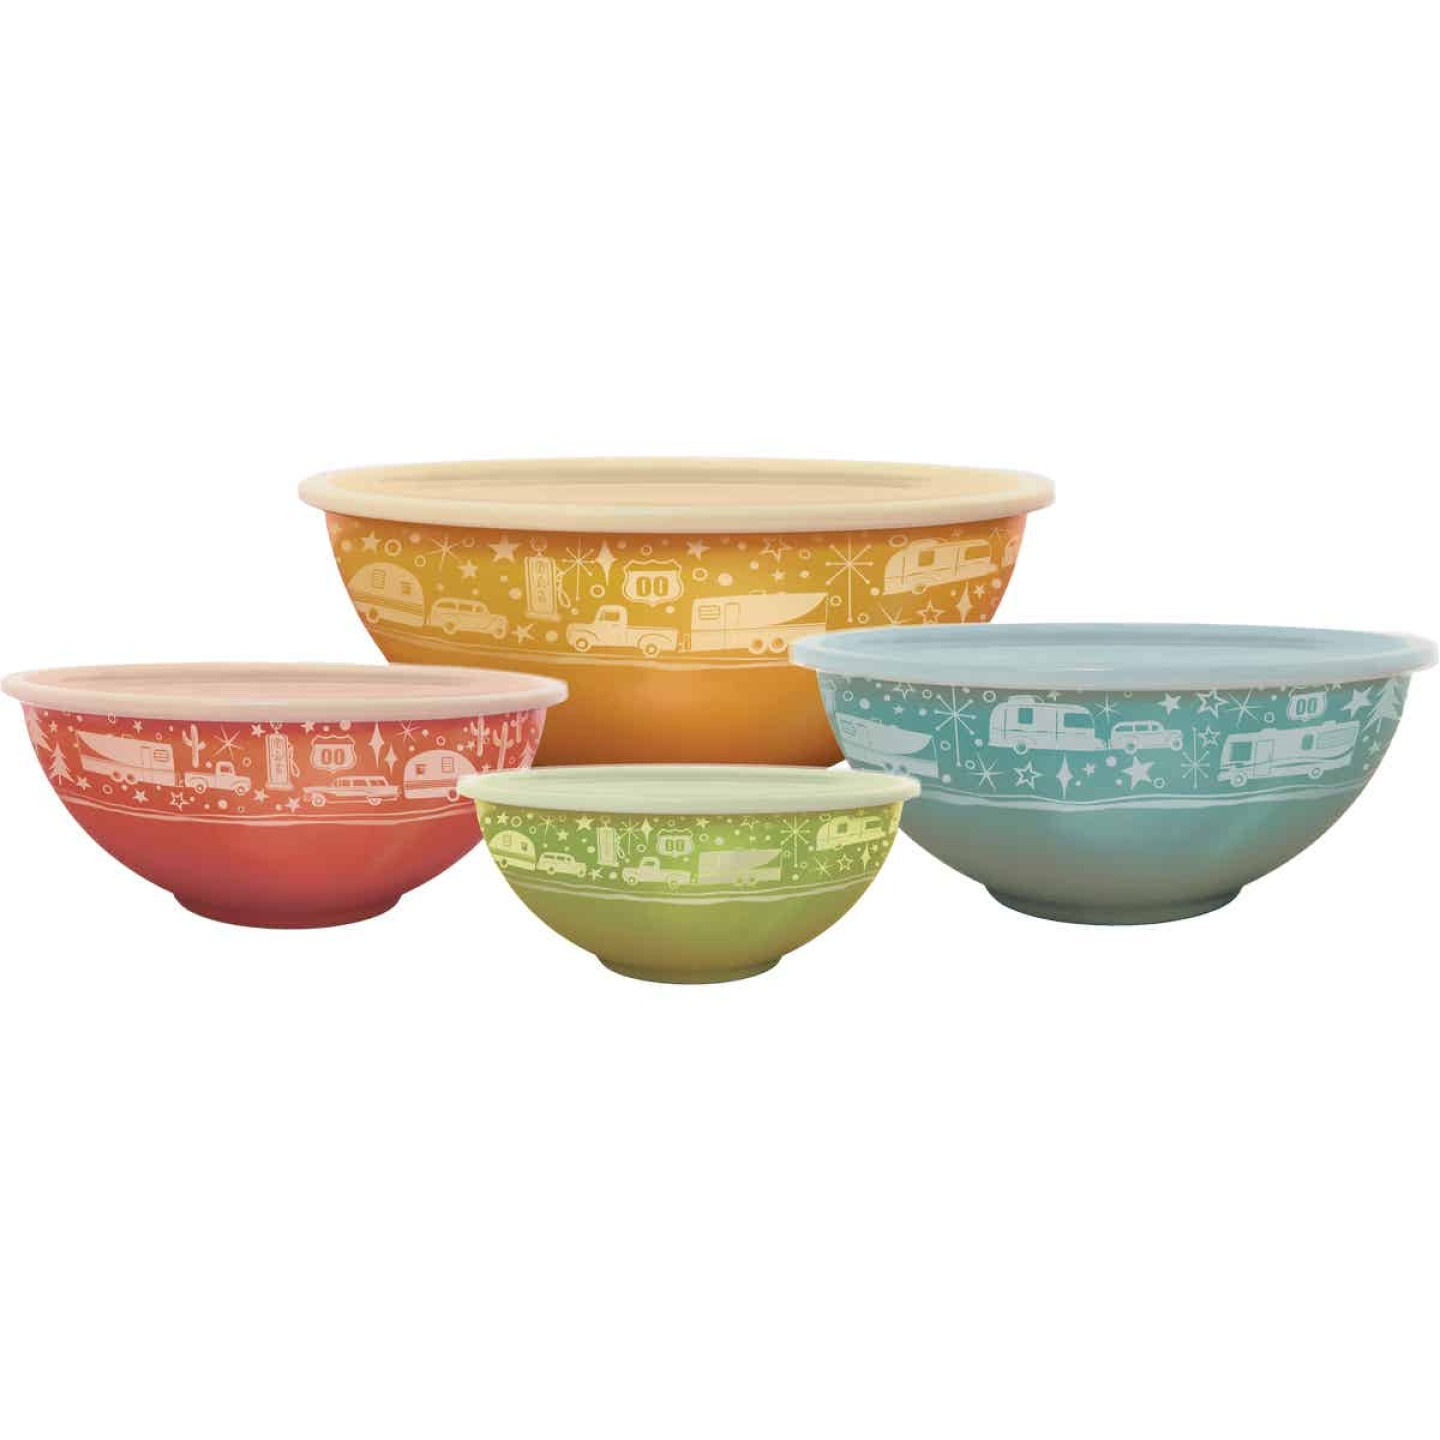 Camp Casual 100% Melamine Nesting Bowls with Lids Image 1